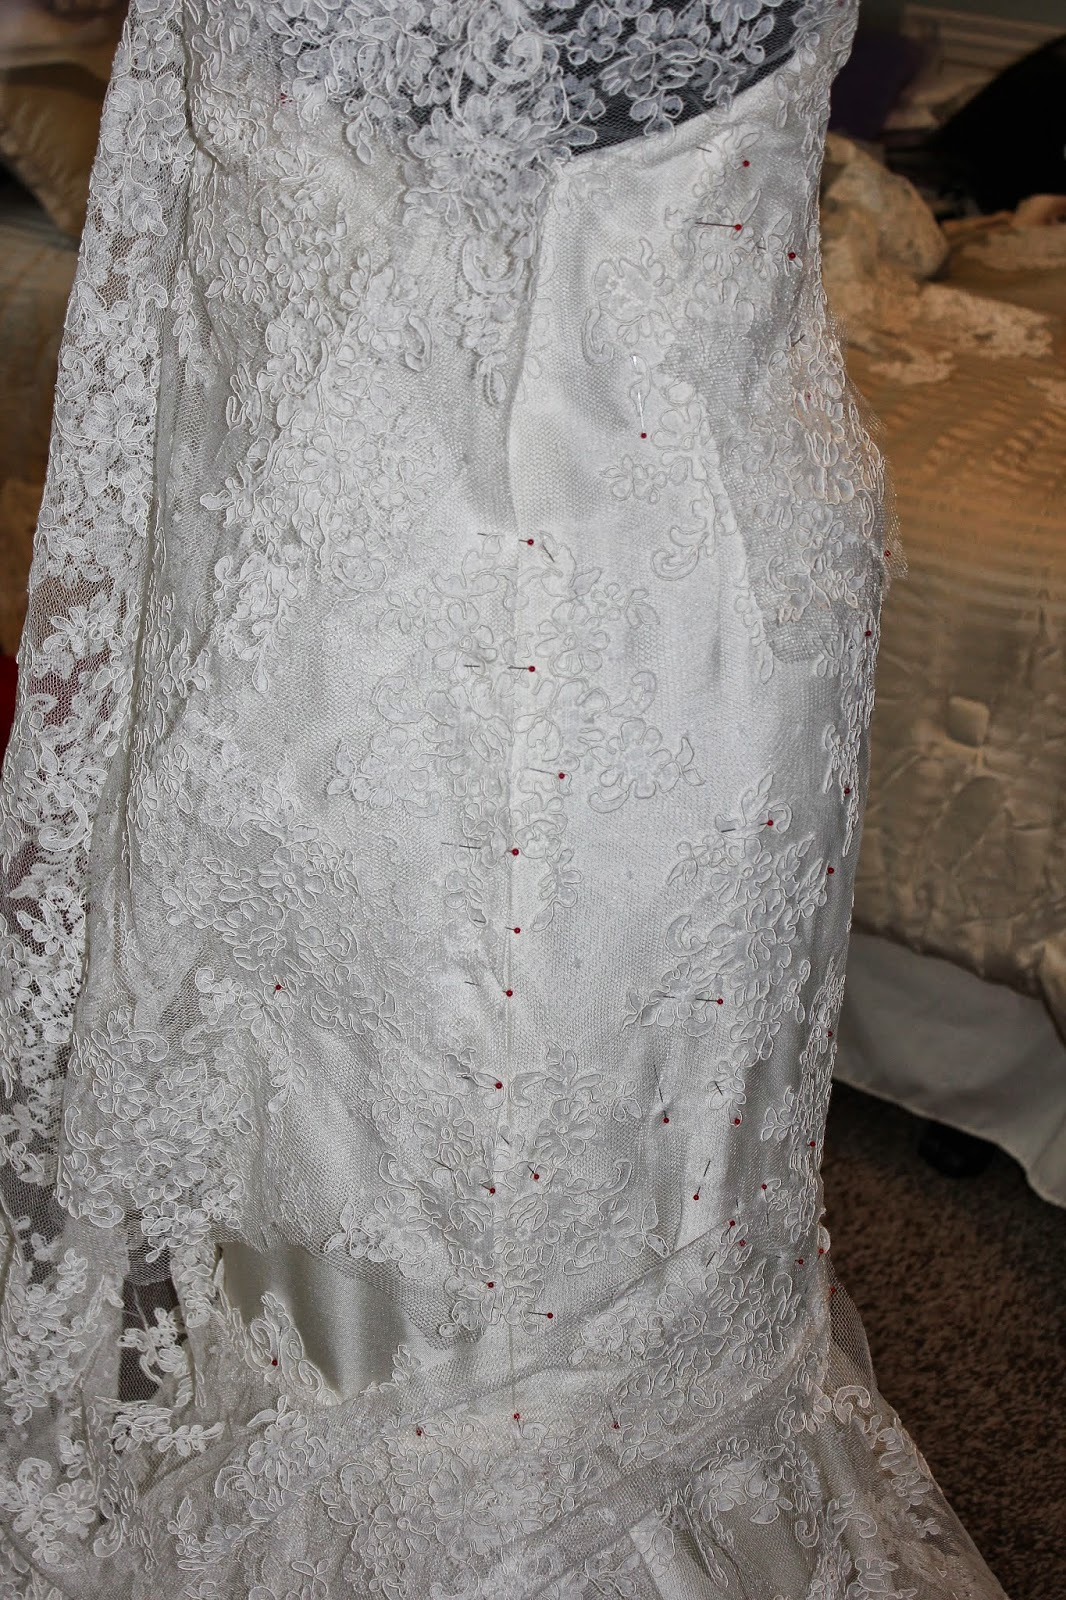 sewn threads: The birth of a wedding gown